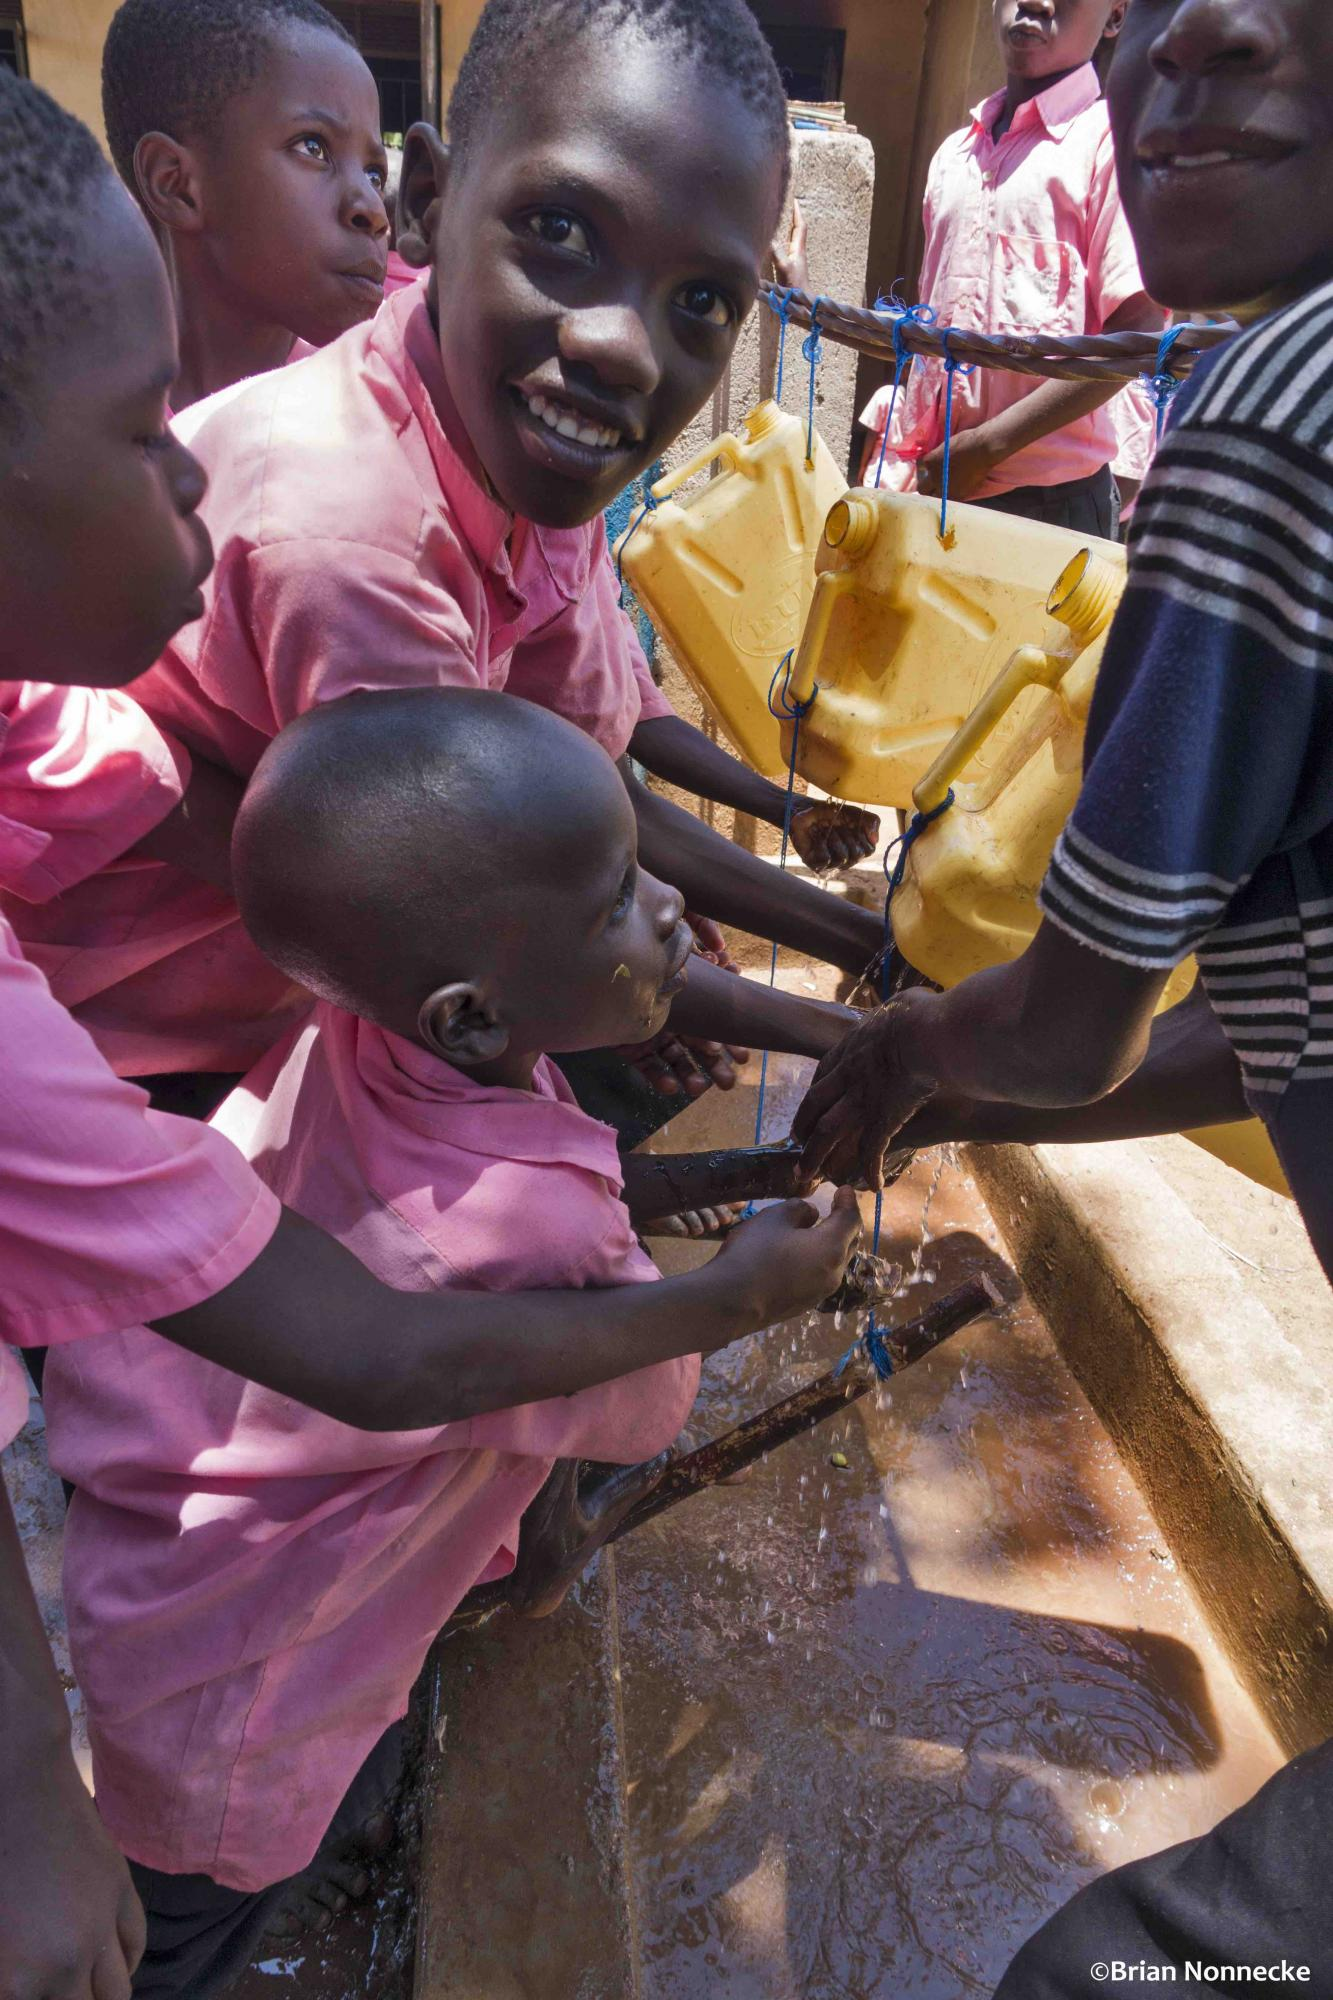 Ugandan children washing hands.